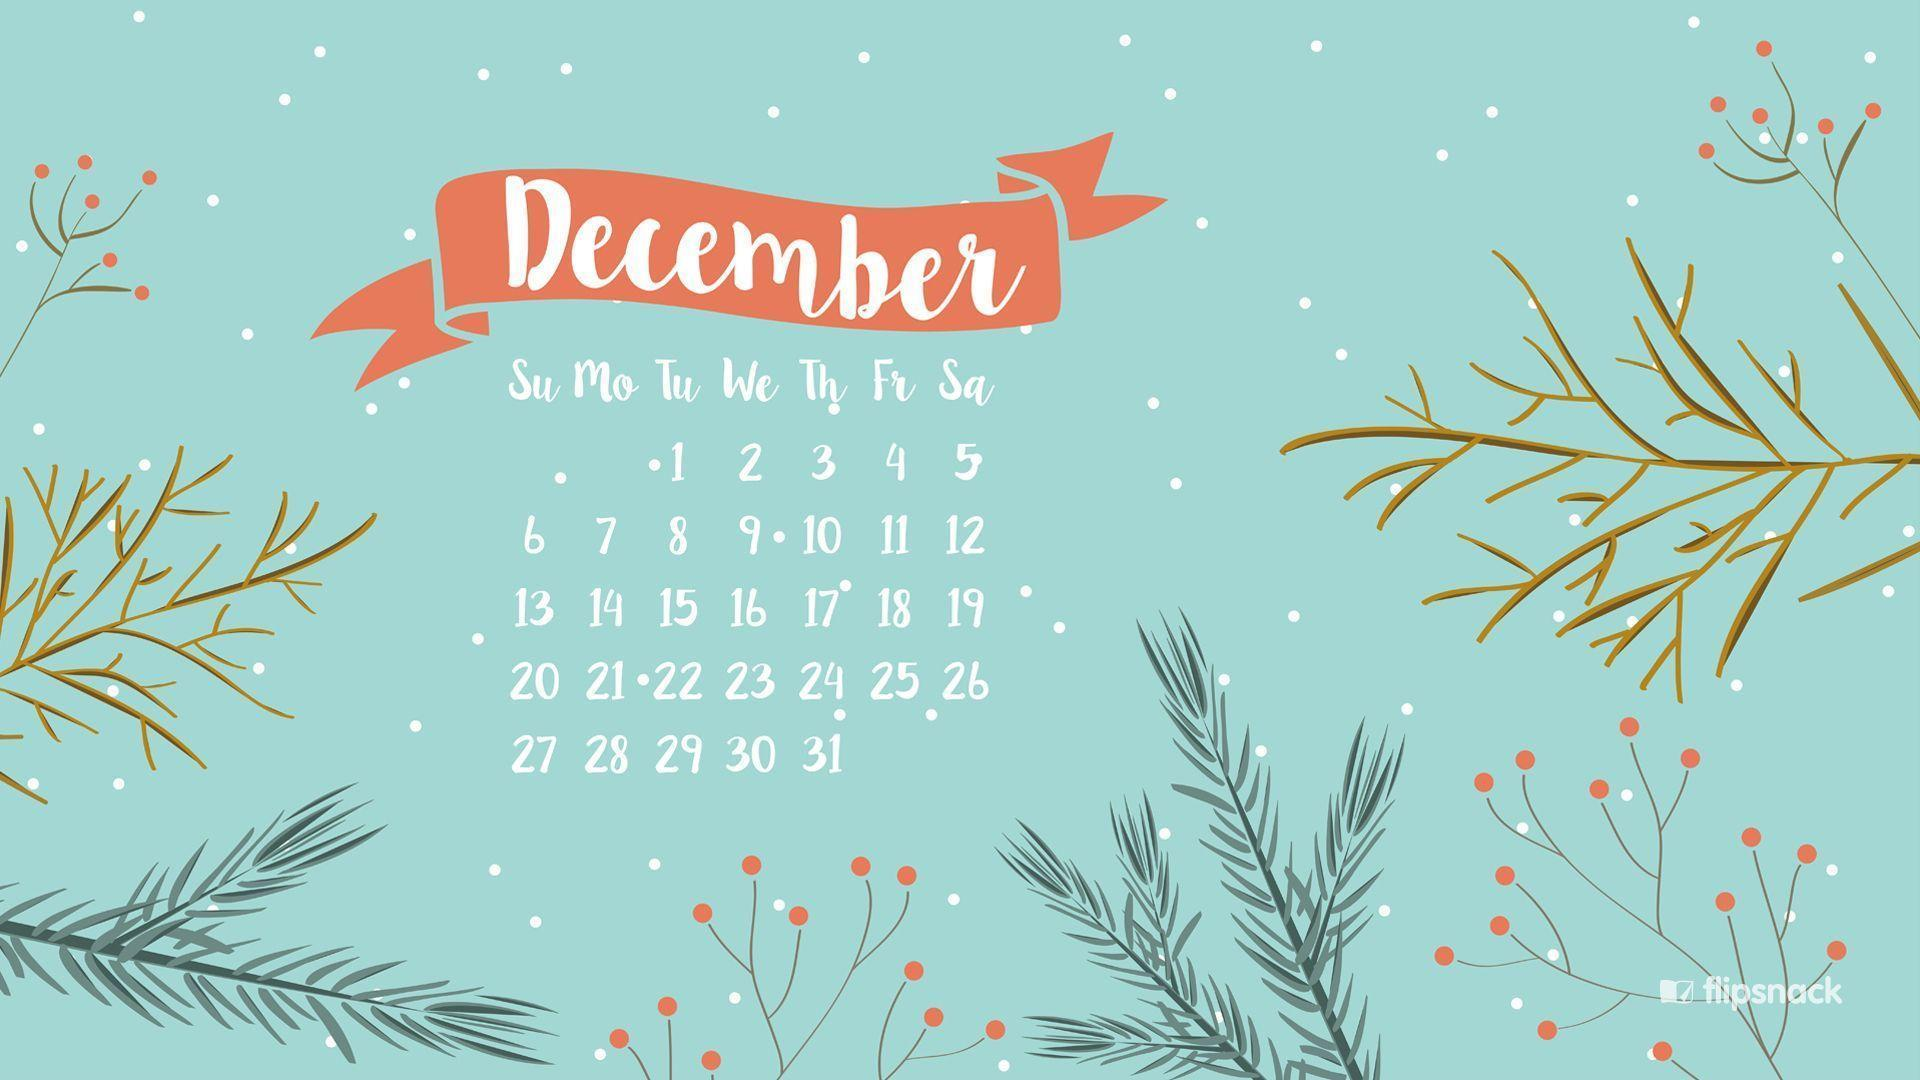 desktop wallpapers calendar december 2017 - wallpaper cave